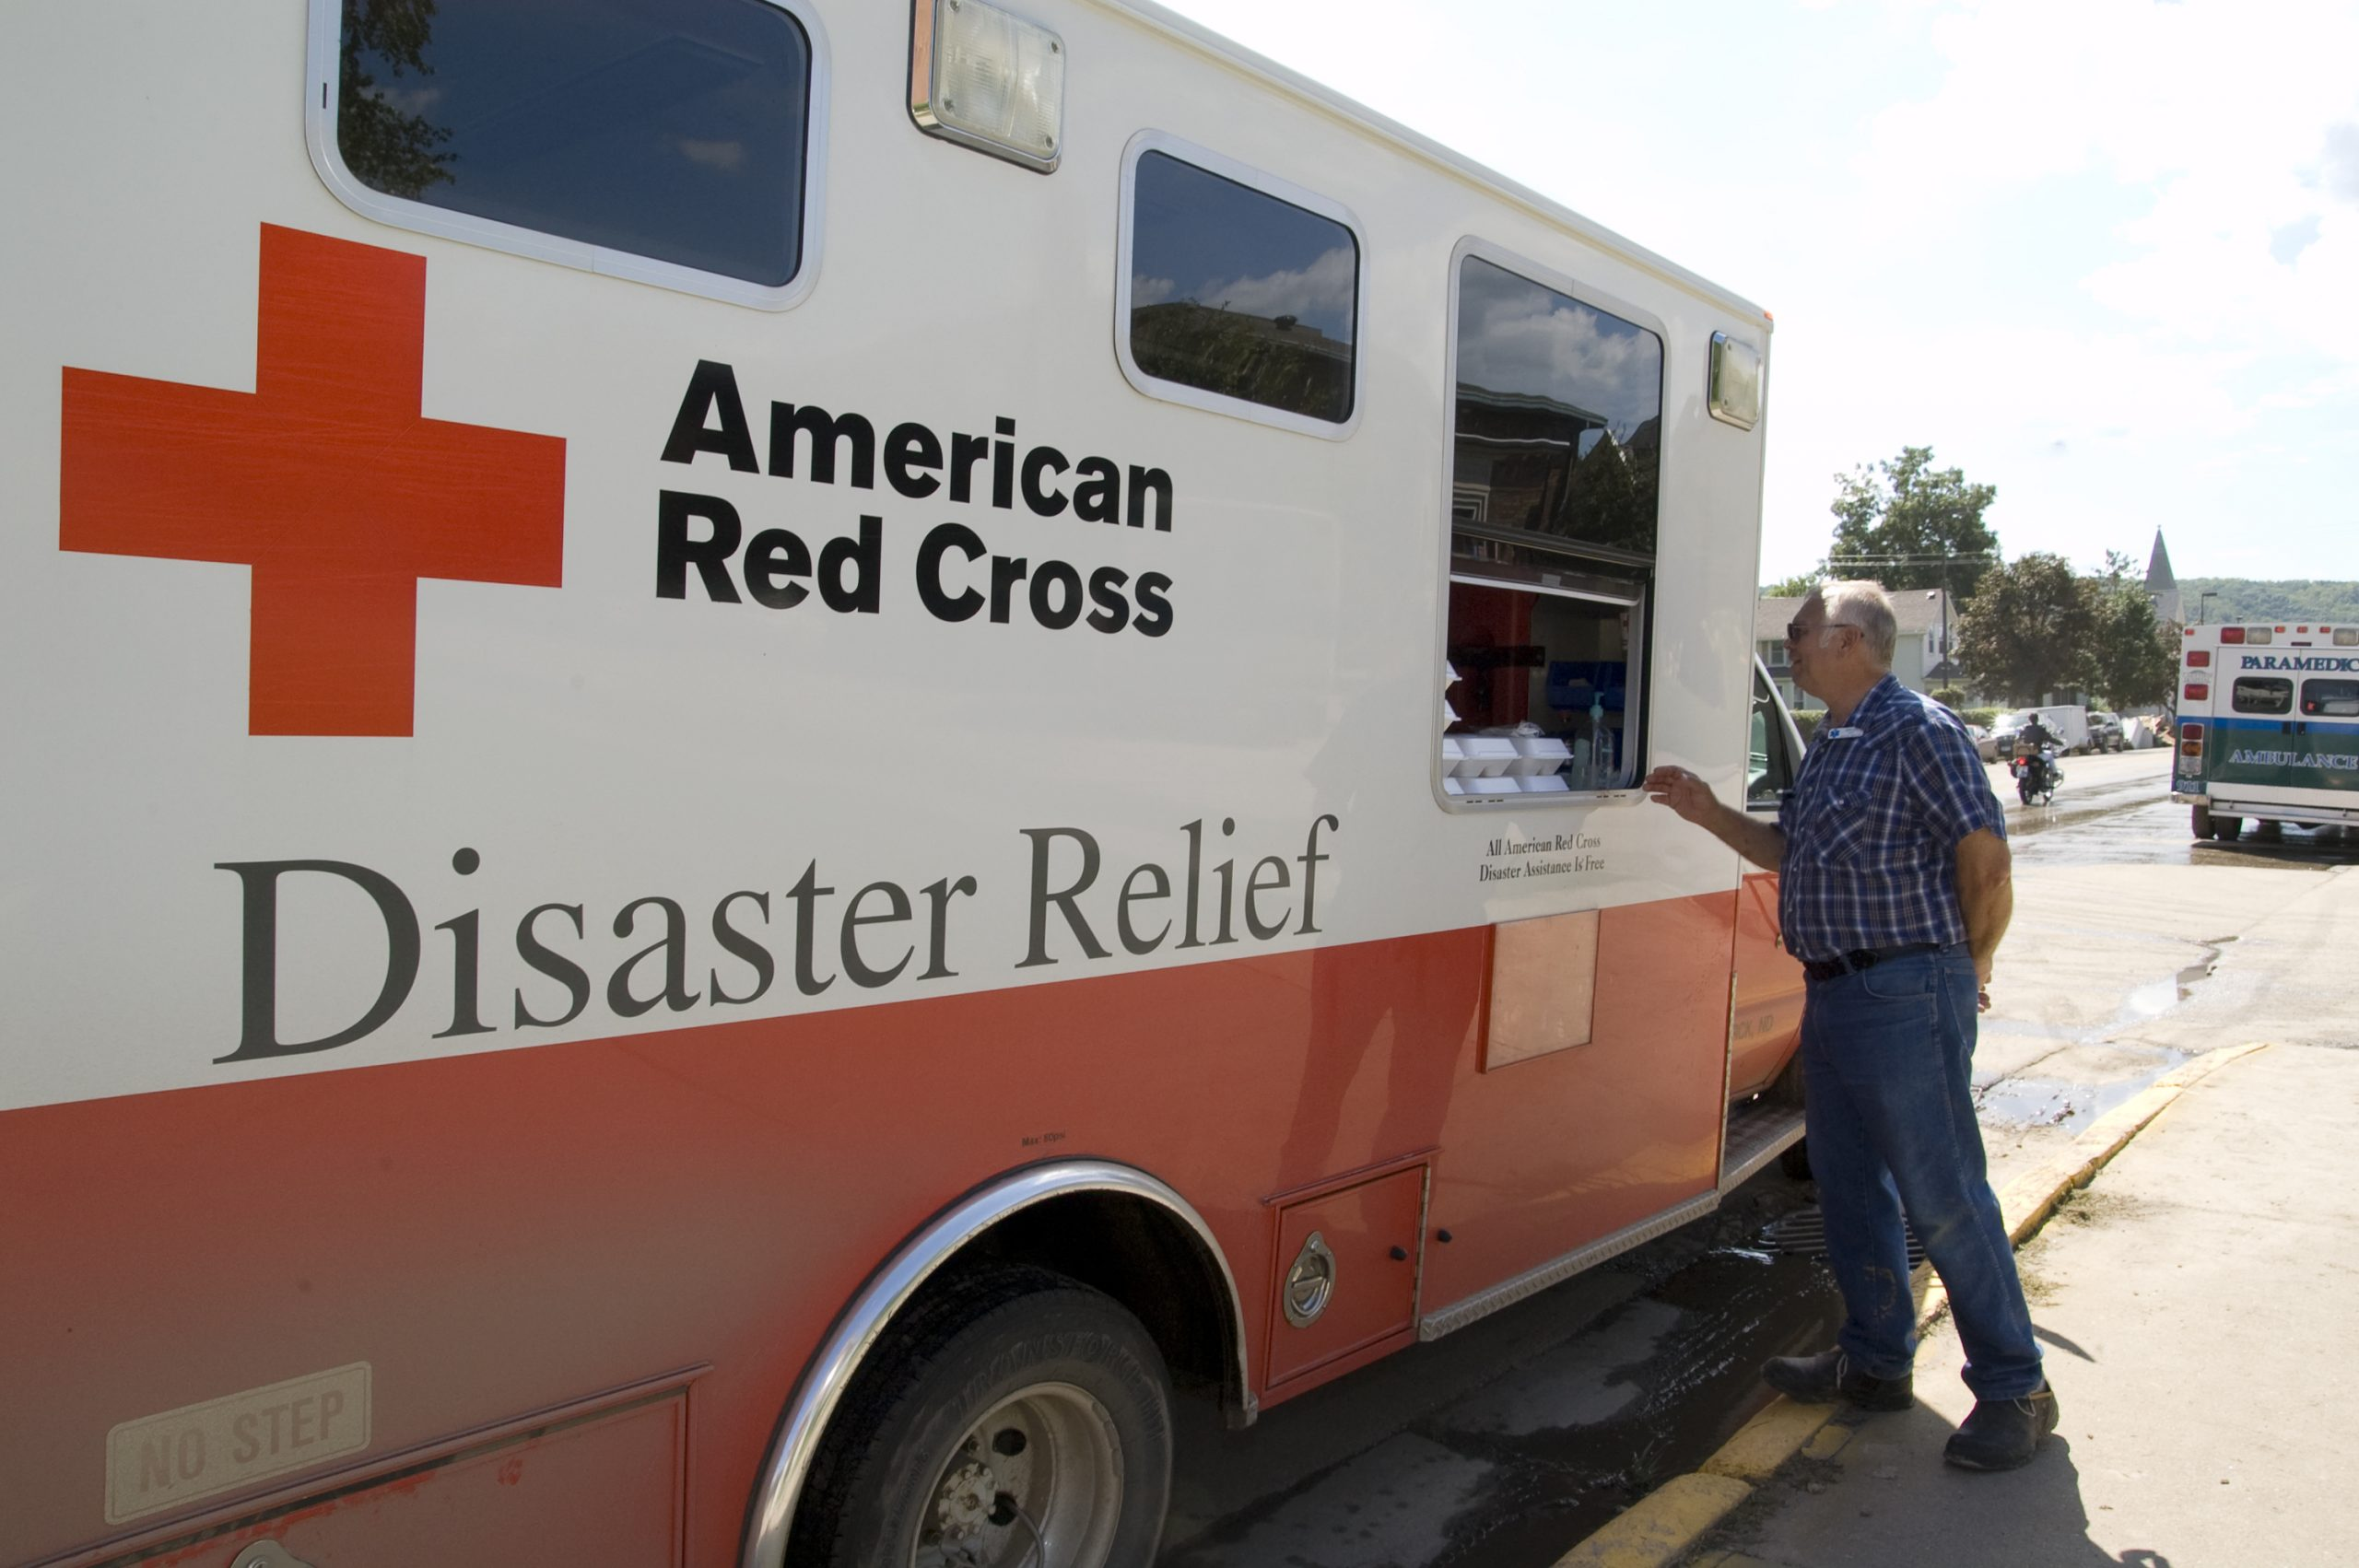 Red Cross Taking Donations to Aid Roosevelt Fire Victims